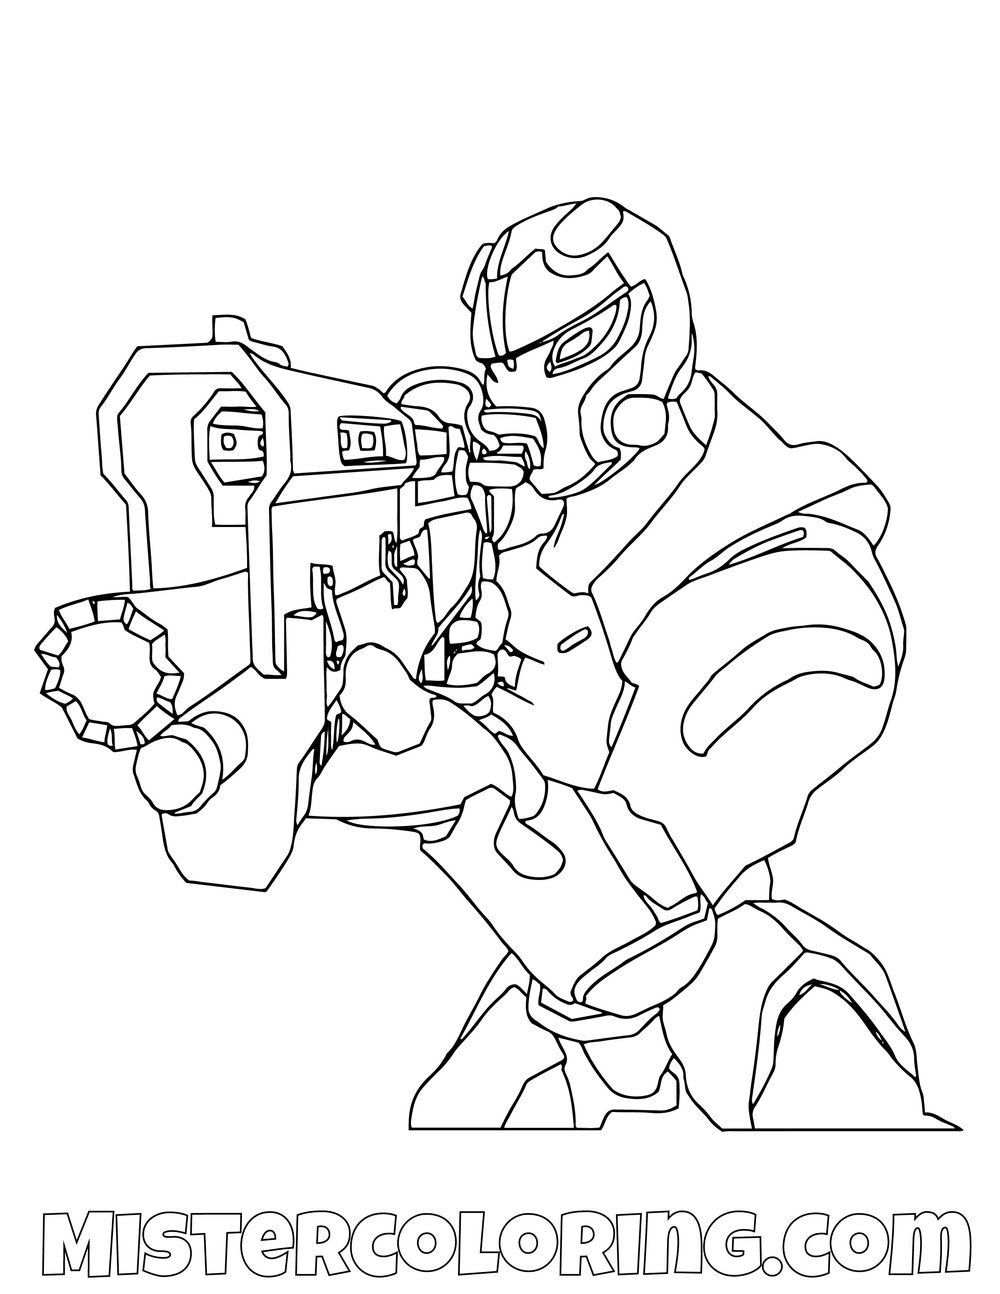 Pin On Fortnite Coloring Pages For Kids